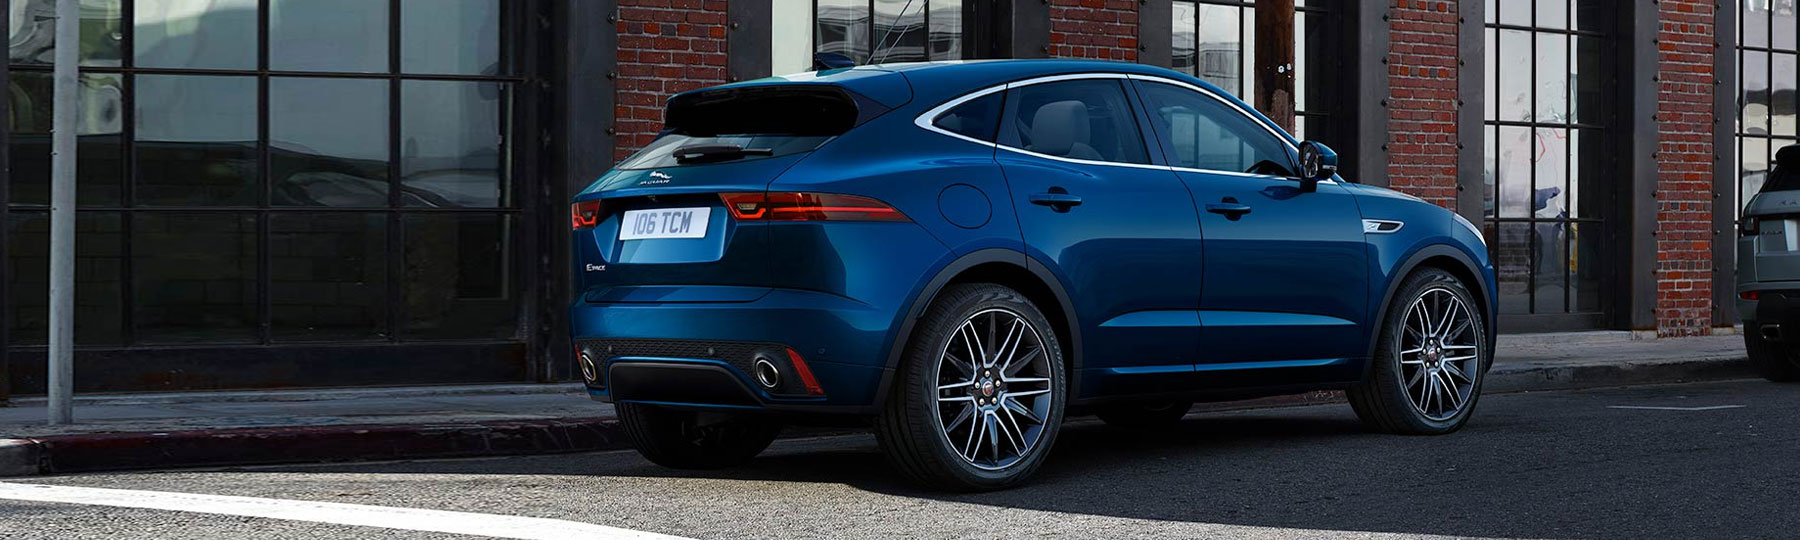 New Jaguar E-PACE Personal Contract Hire Offer